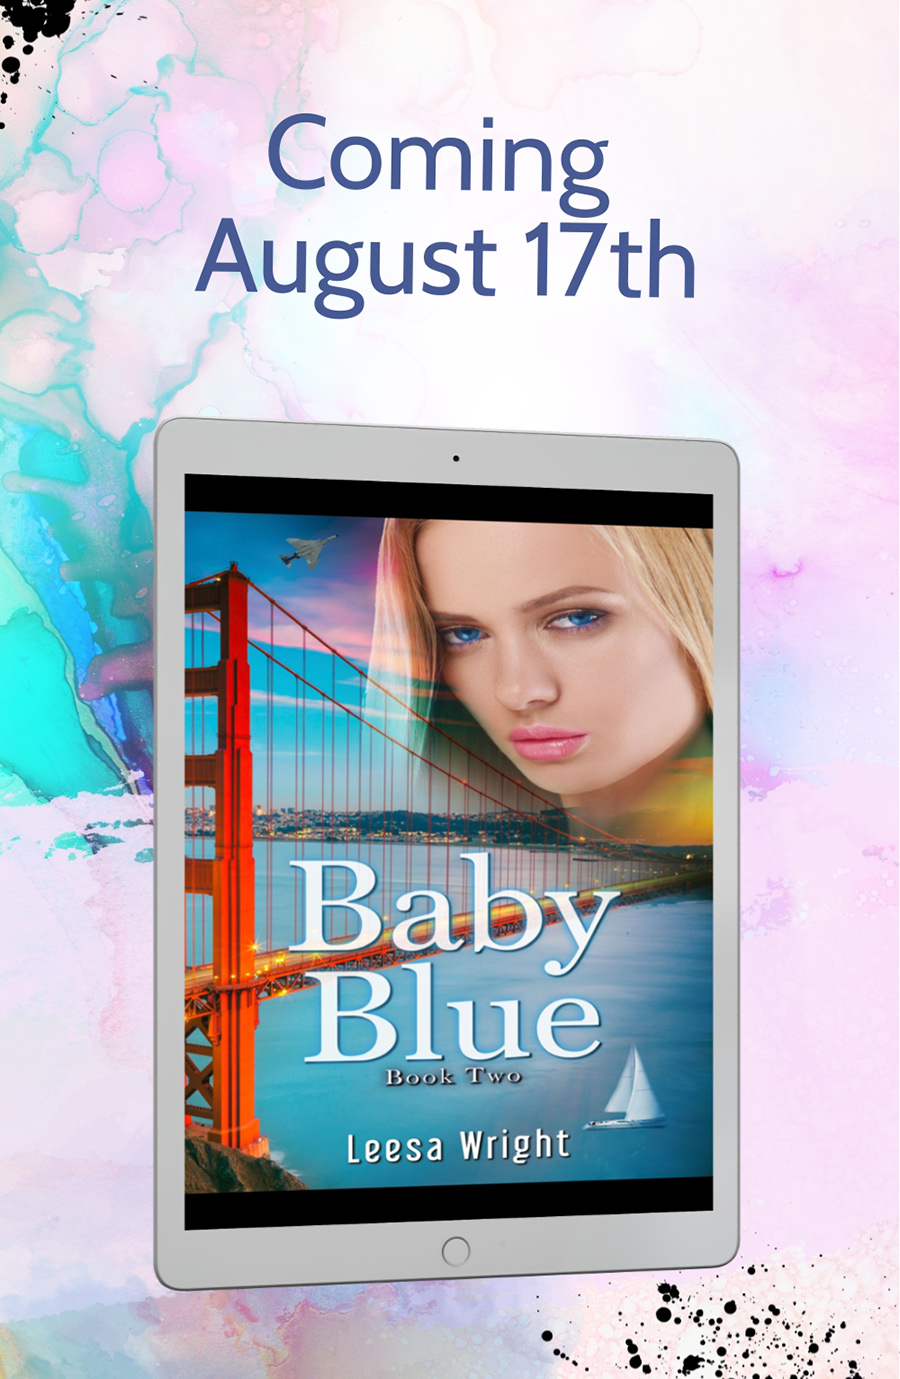 BABY BLUE, the second standalone book in her adult historical romance series, Corrington Brothers, by Leesa Wright release on August 17